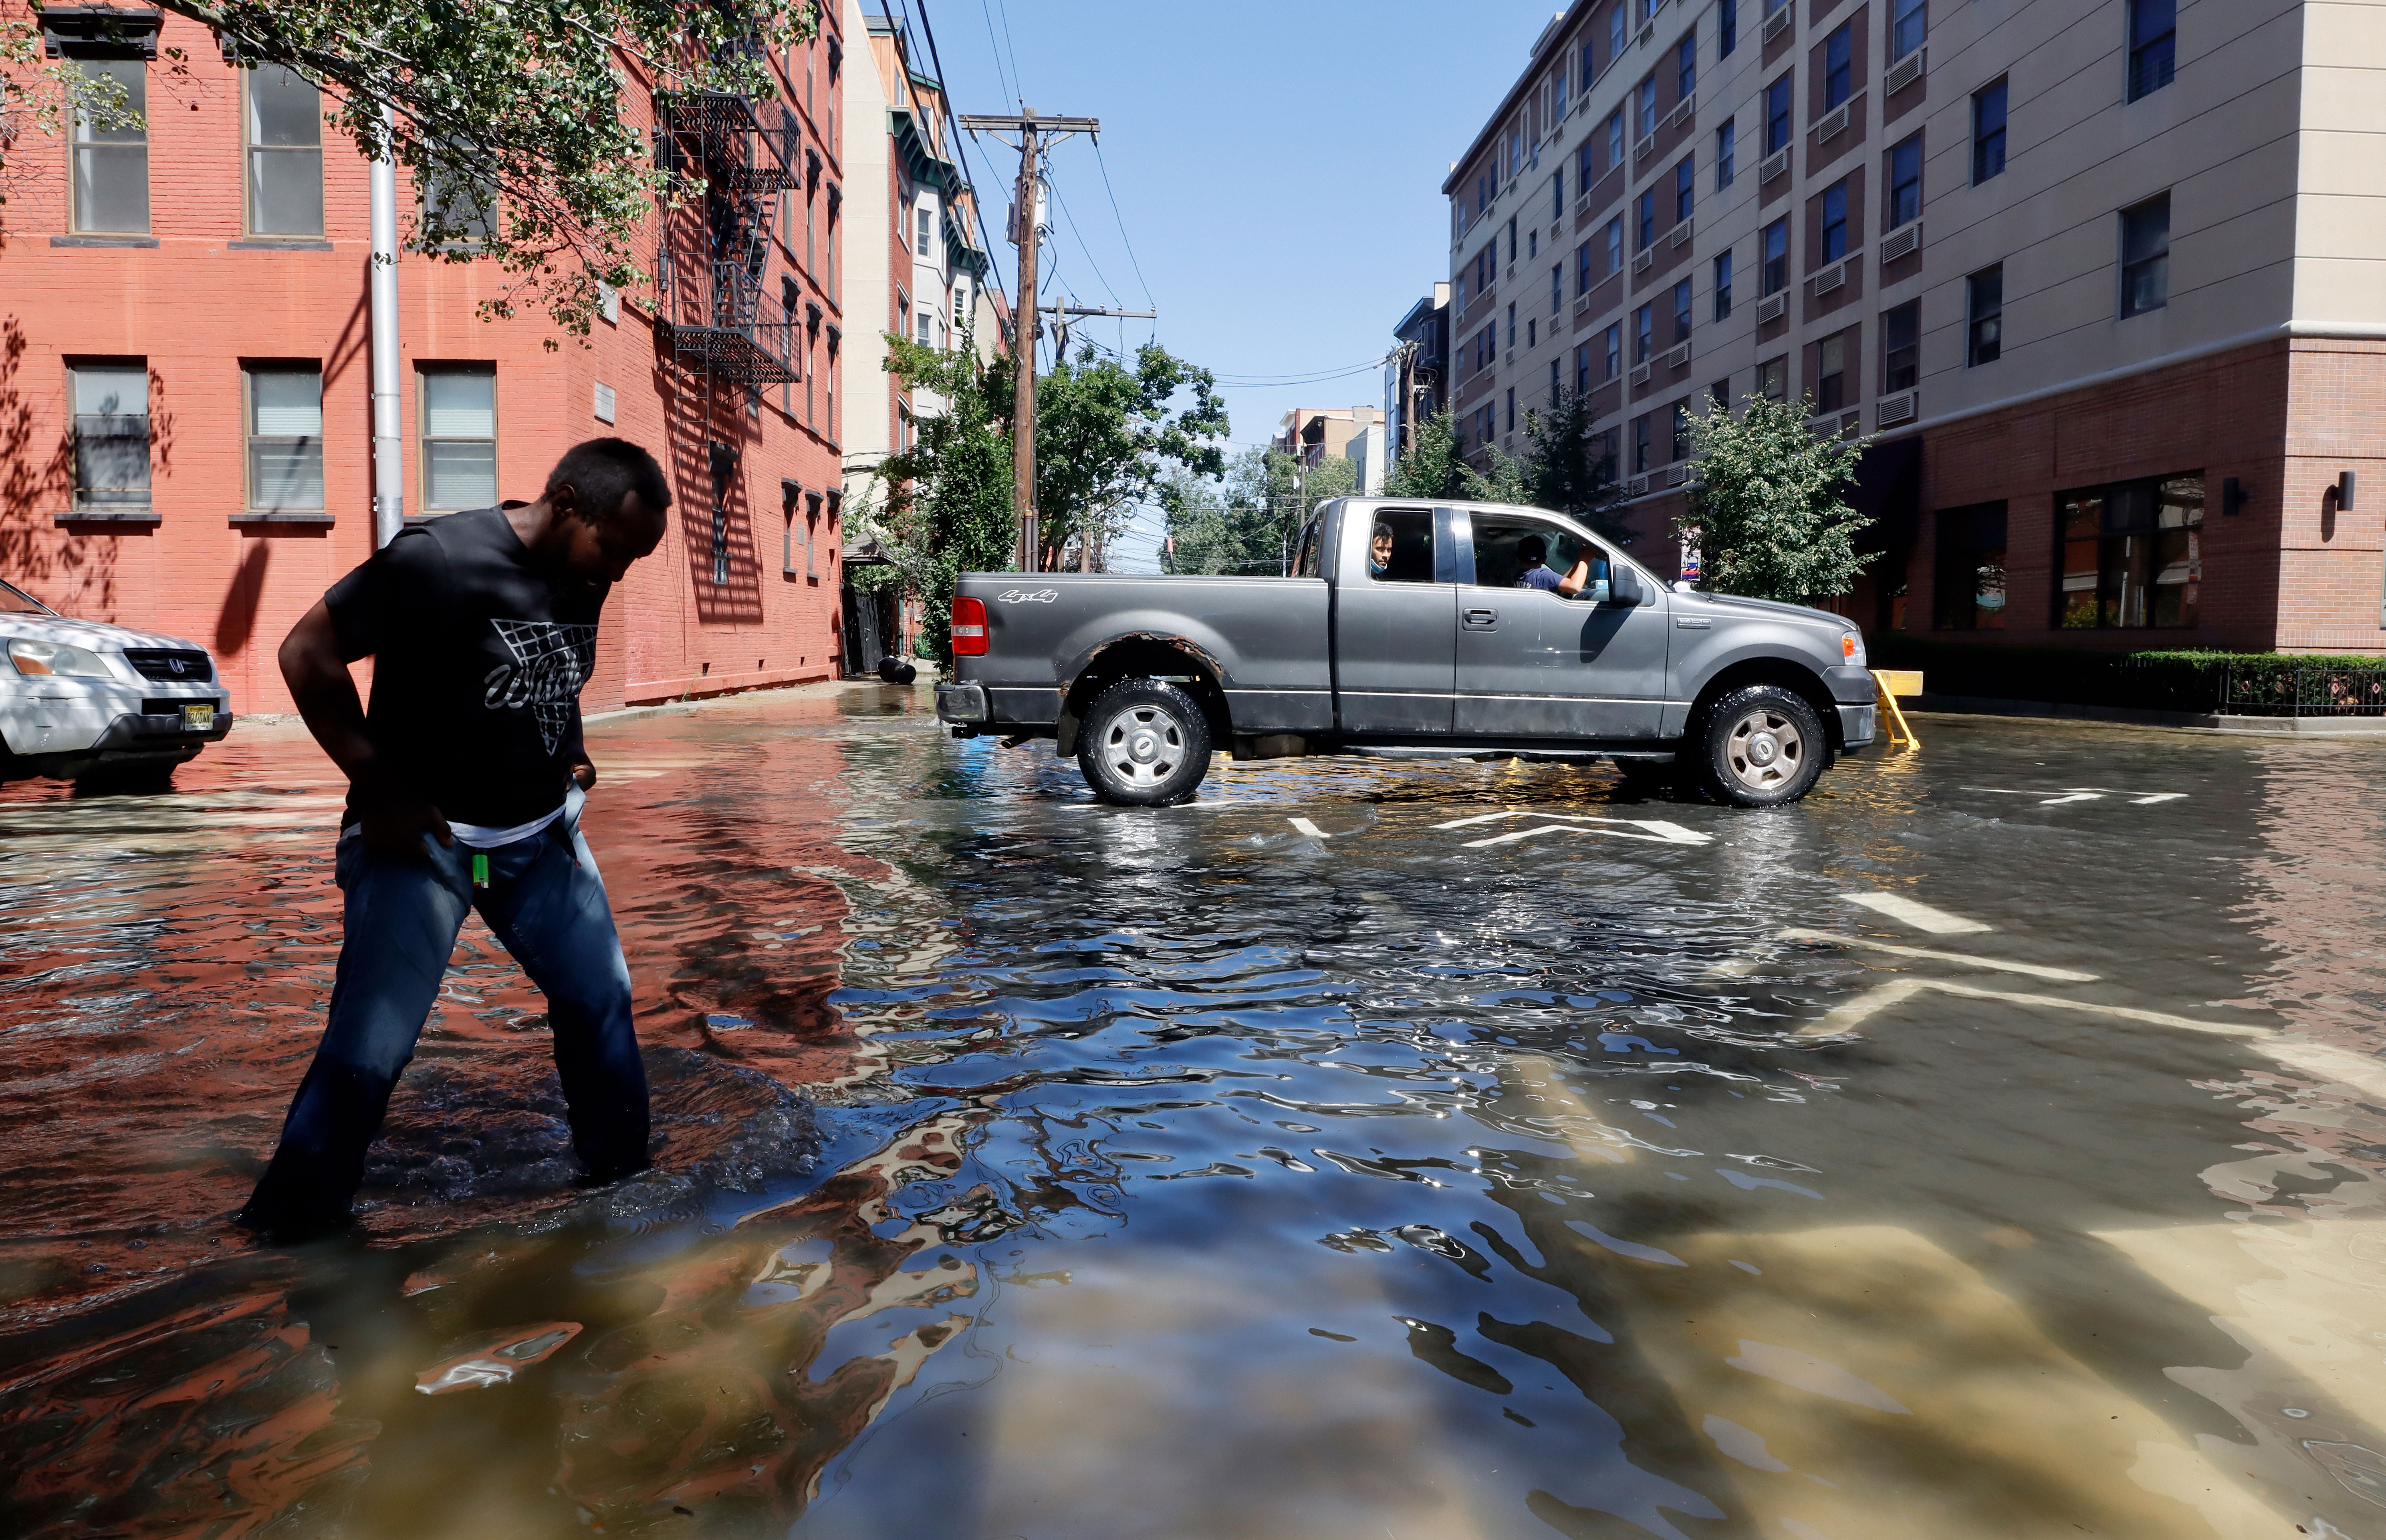 People move through a flooded street in Hoboken, New Jersey, on September 2.